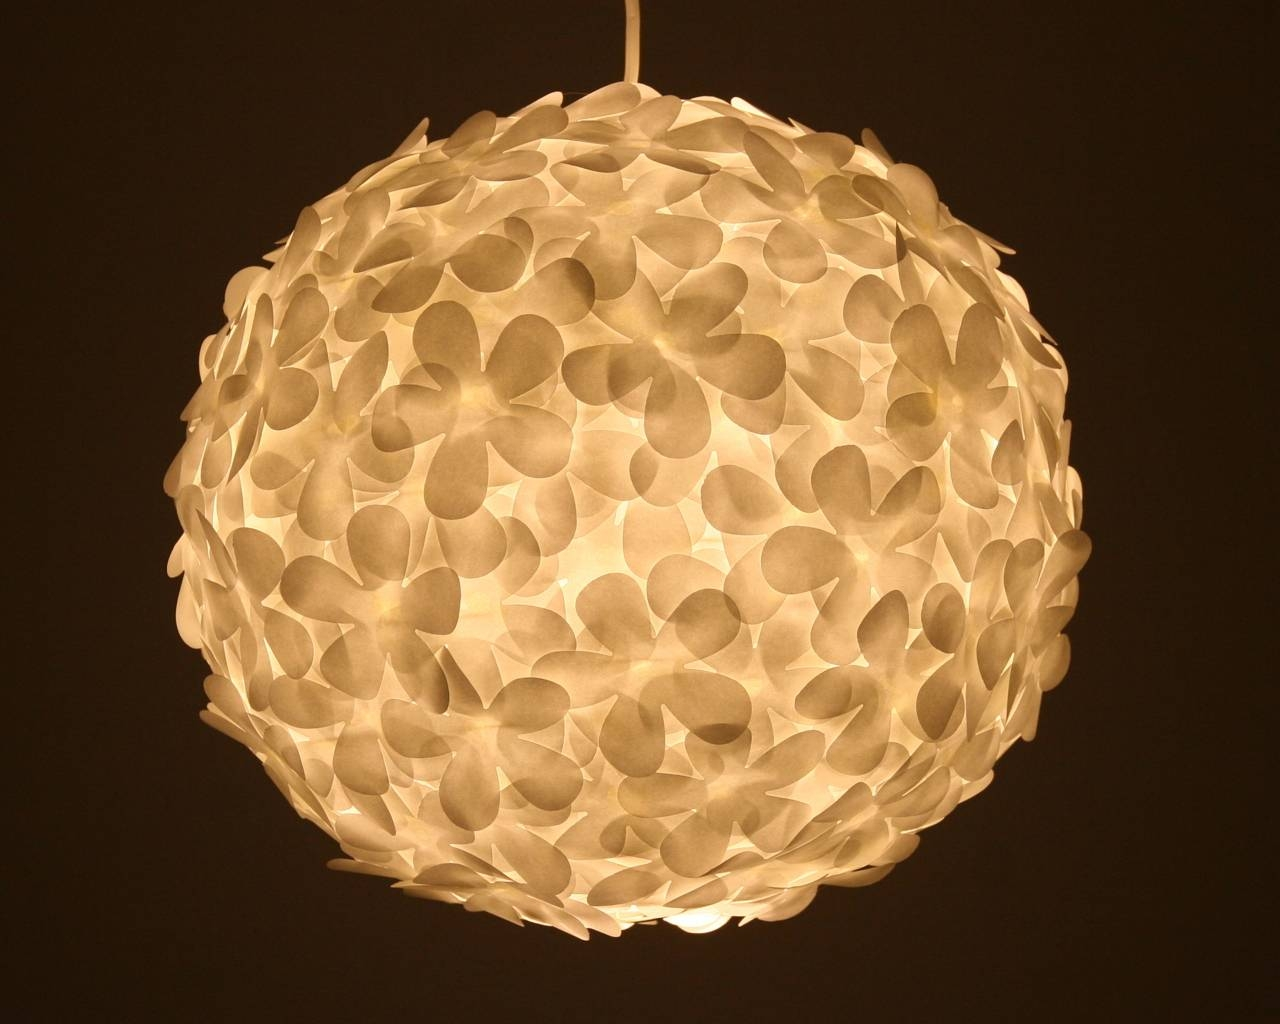 White Paper Flower Pendant Light | The 3 R's Blog in White Flower Pendant Lights (Image 13 of 15)